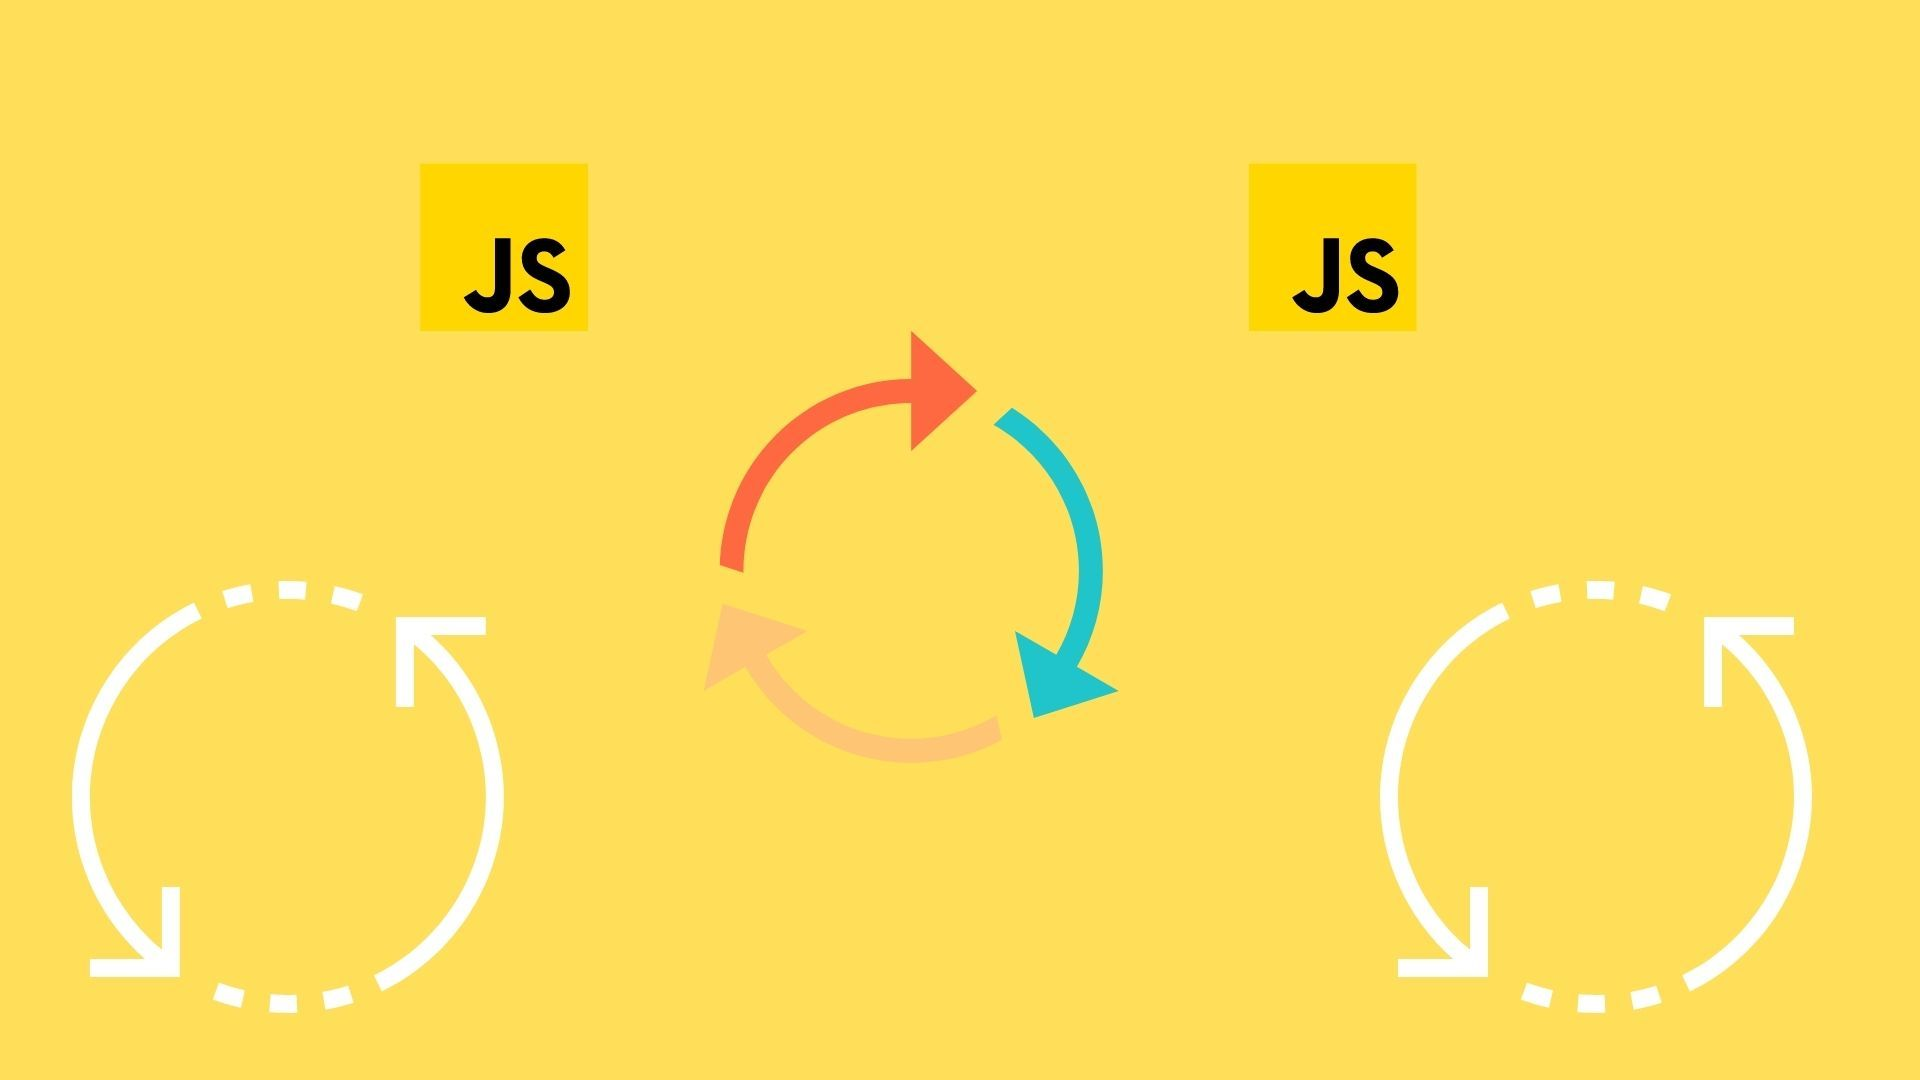 forEach() loops in JavaScript are fun to use – until you need to get out of them. Here is a short guide on how forEach() works, how to break out of